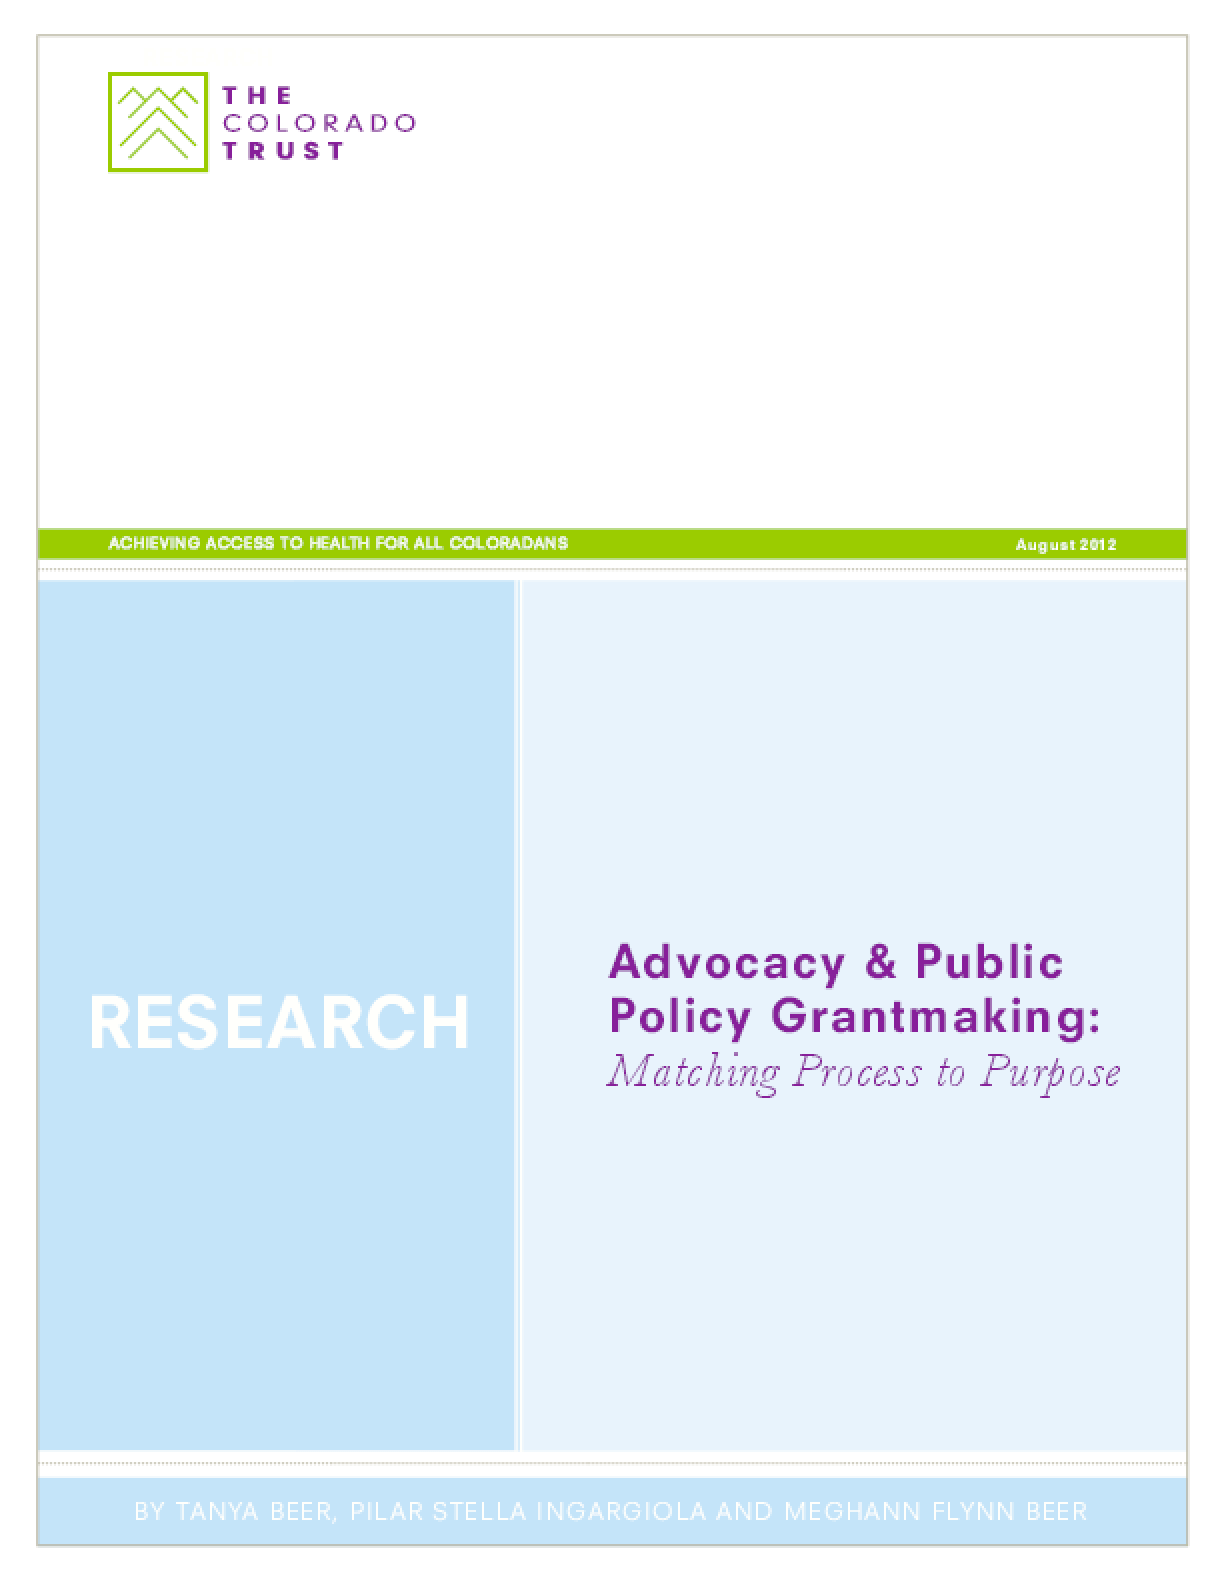 Advocacy & Public Policy Grantmaking: Matching Process to Purpose